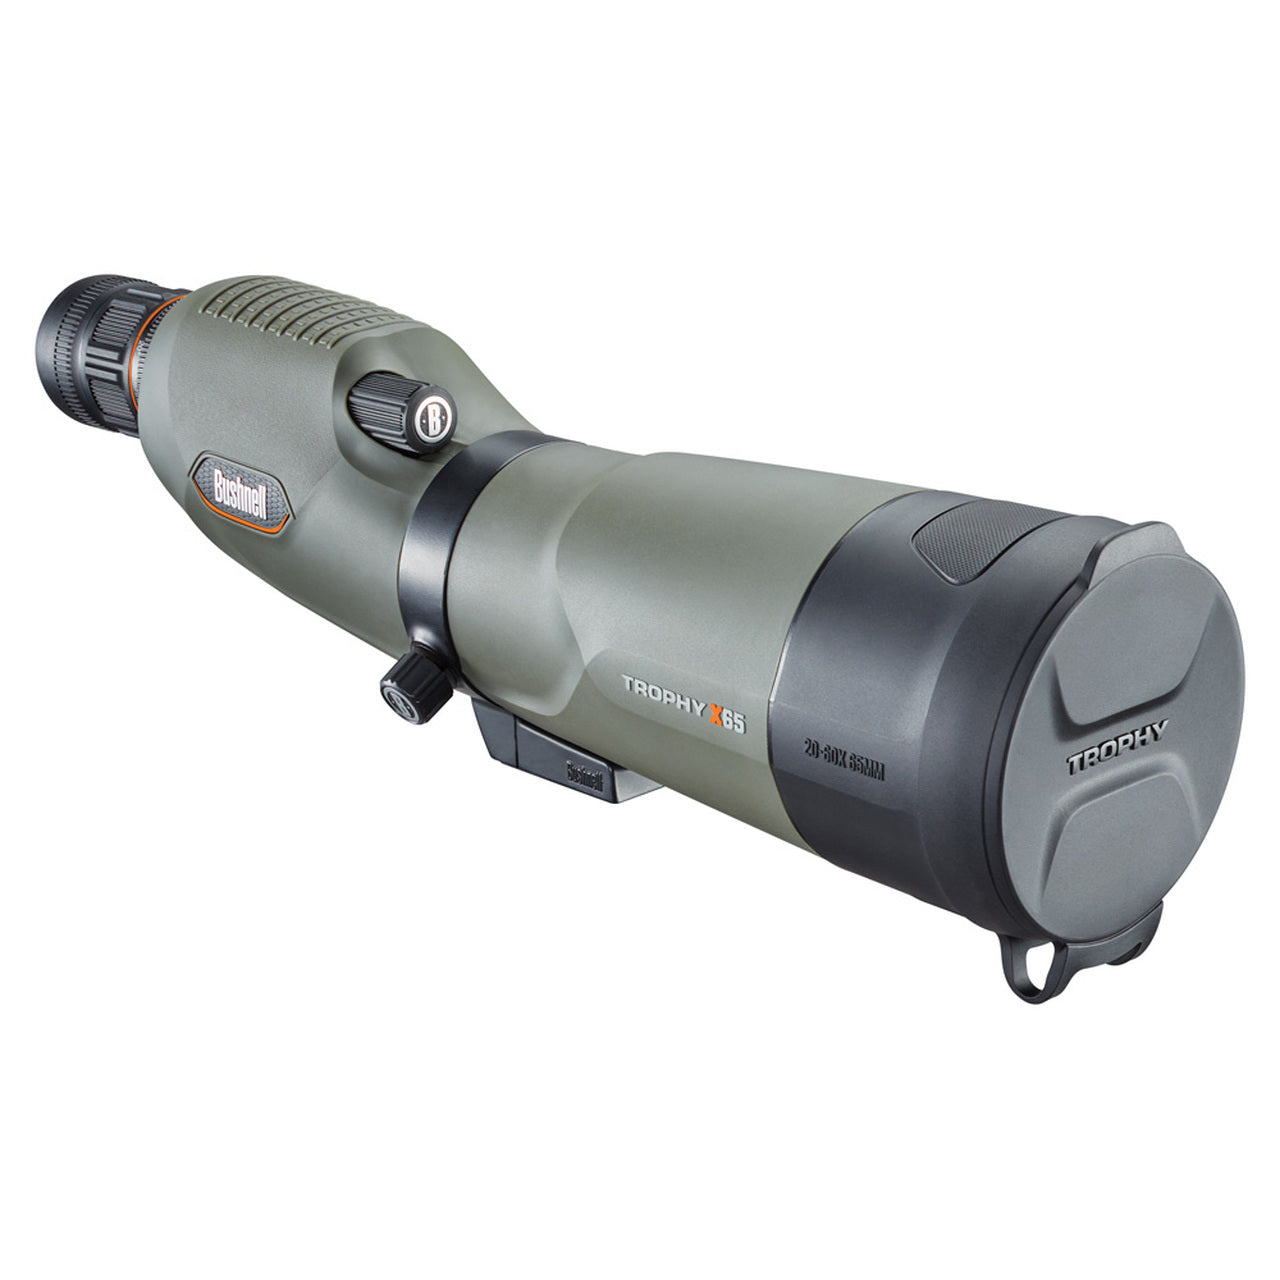 Bushnell Trophy Extreme Spotting Scope - 20/60x65